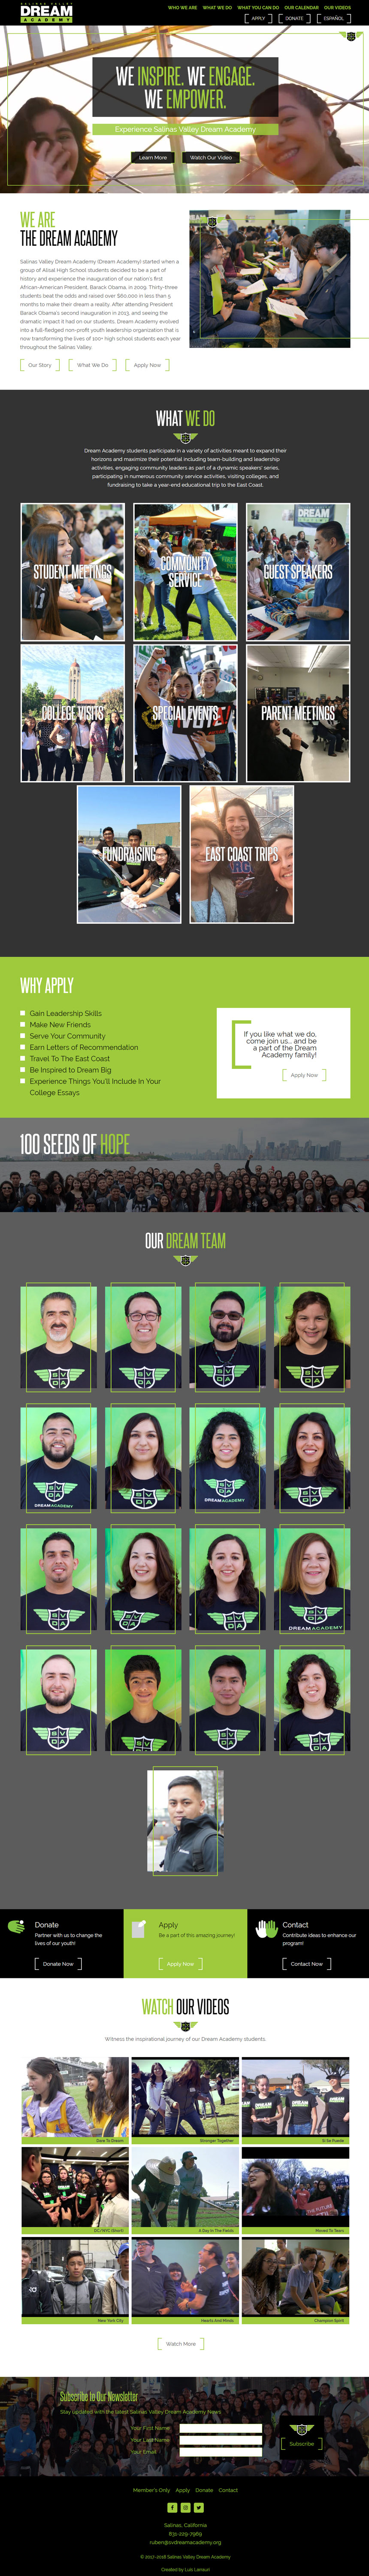 Salinas Valley Dream Academy - Home Page